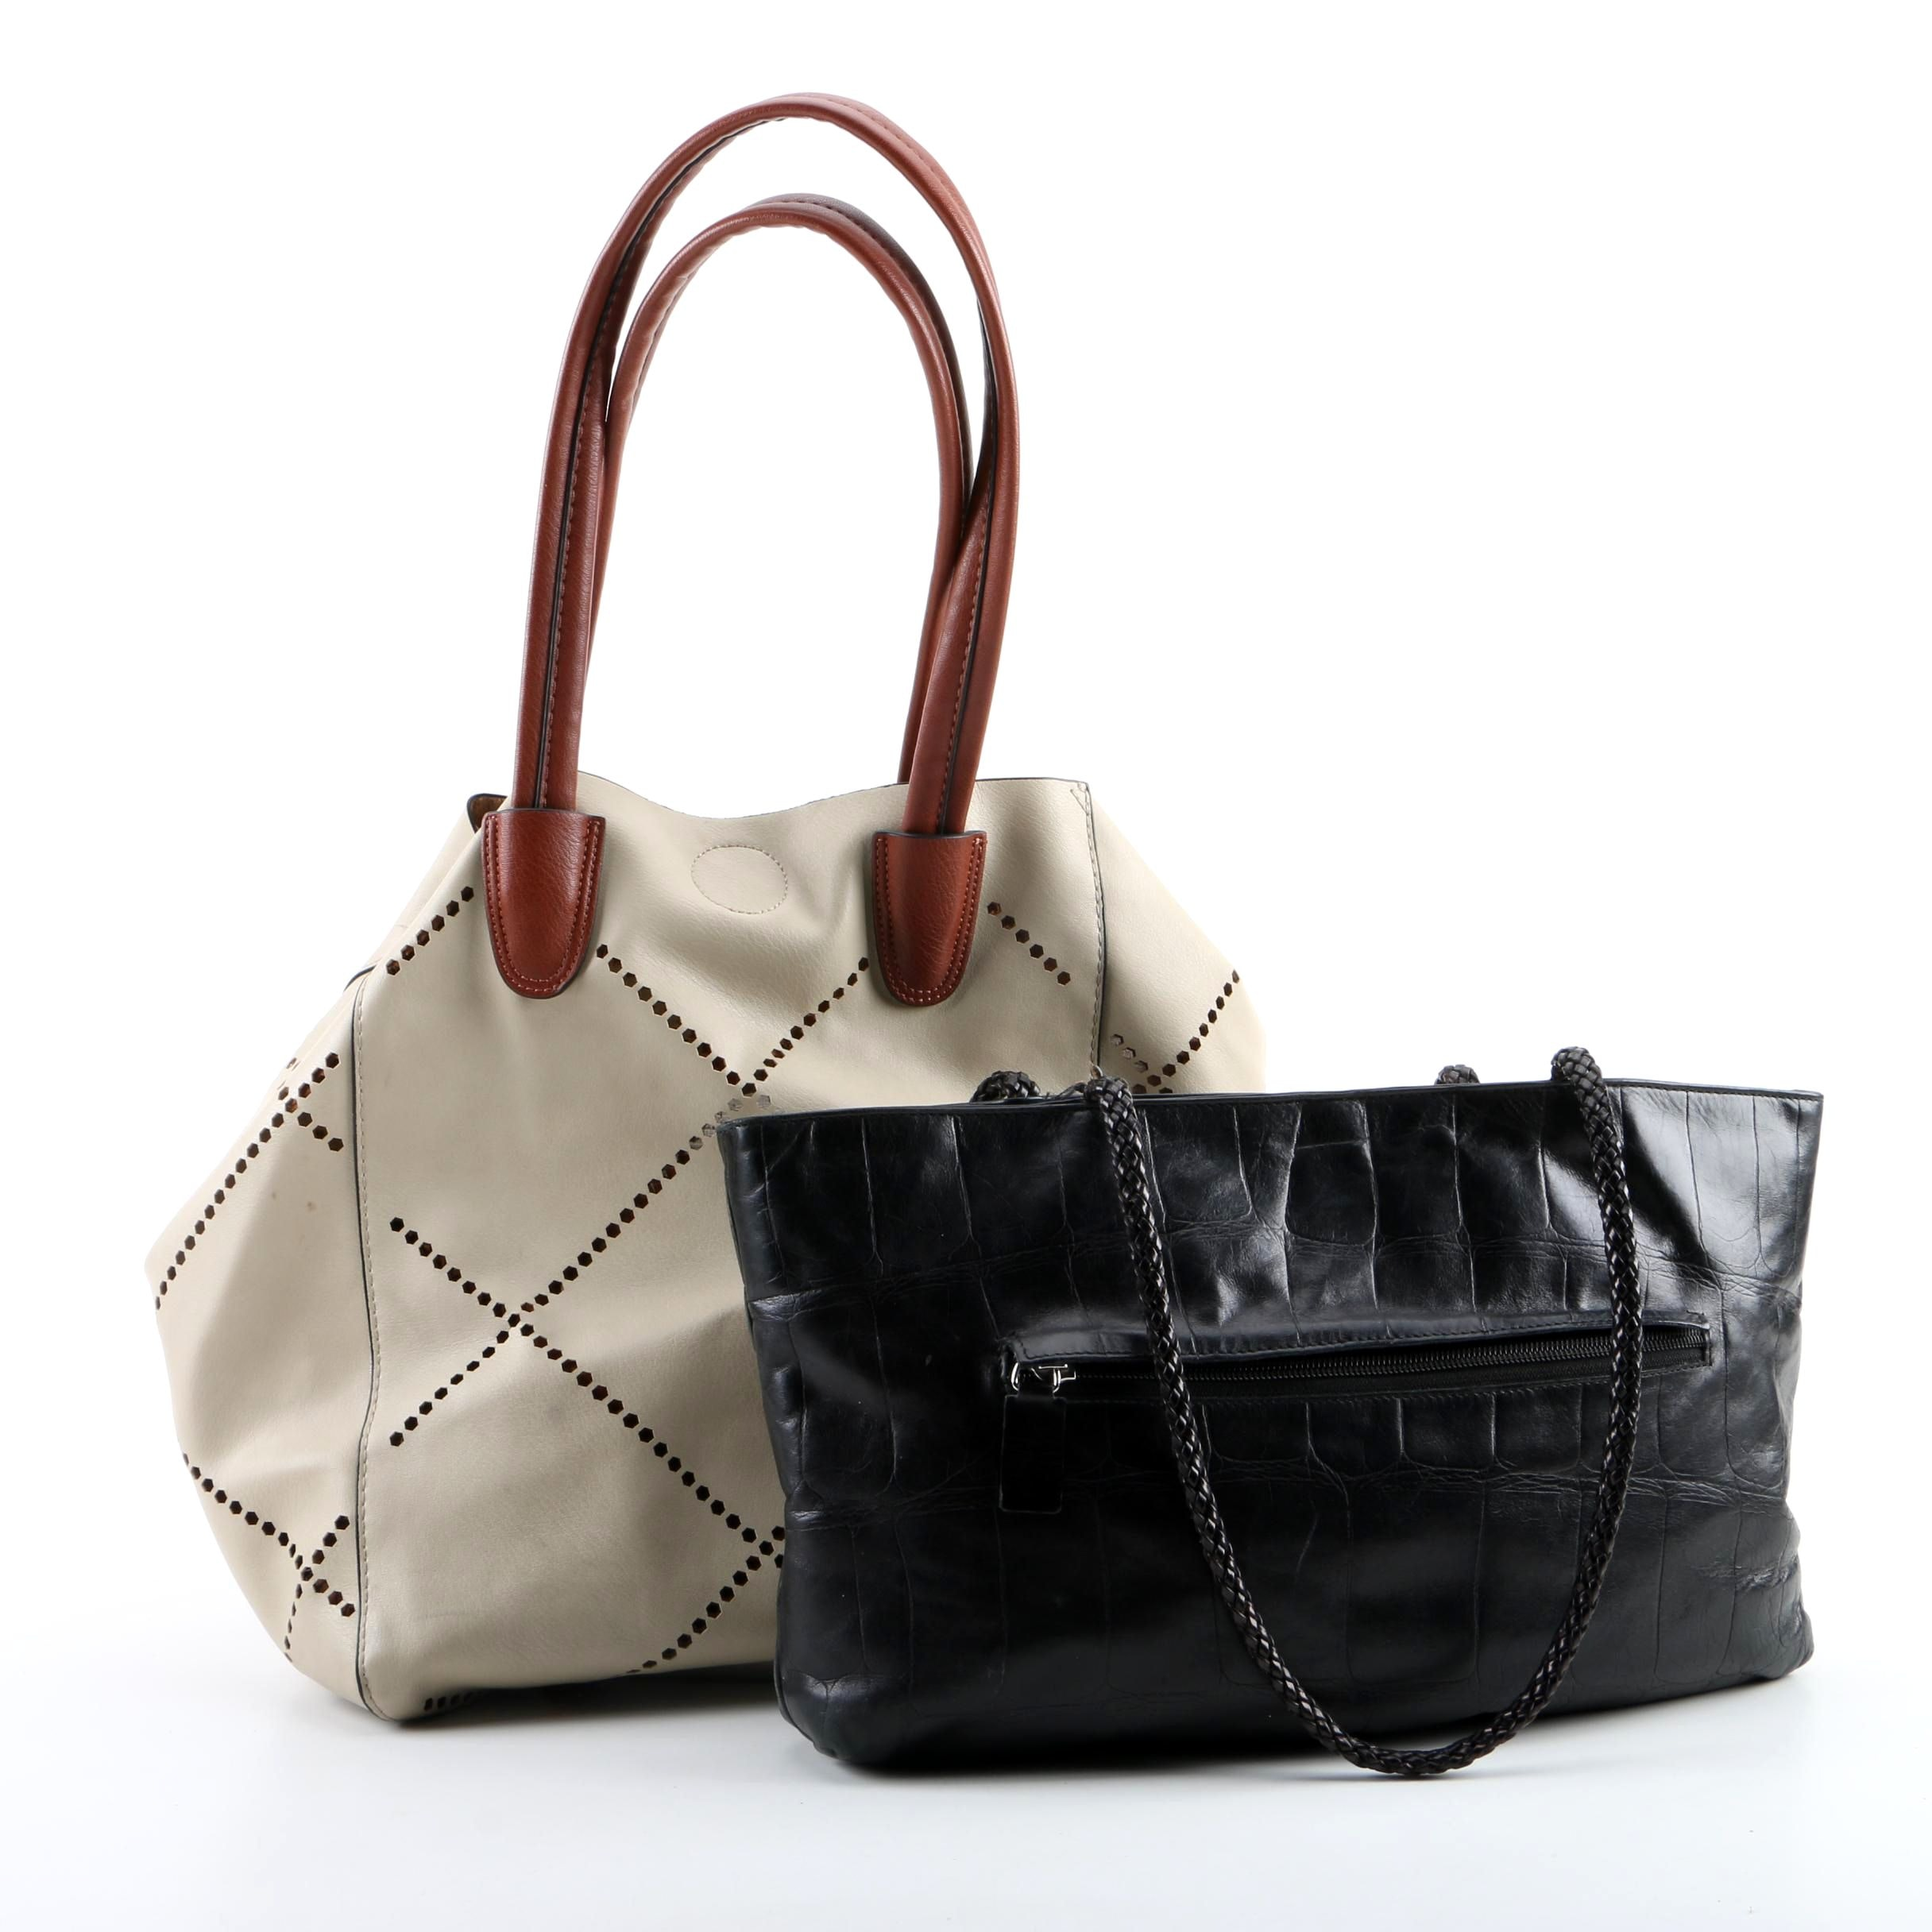 Falor Le Borse Black Embossed Leather and Louenhide White Laser Cut Leather Bags